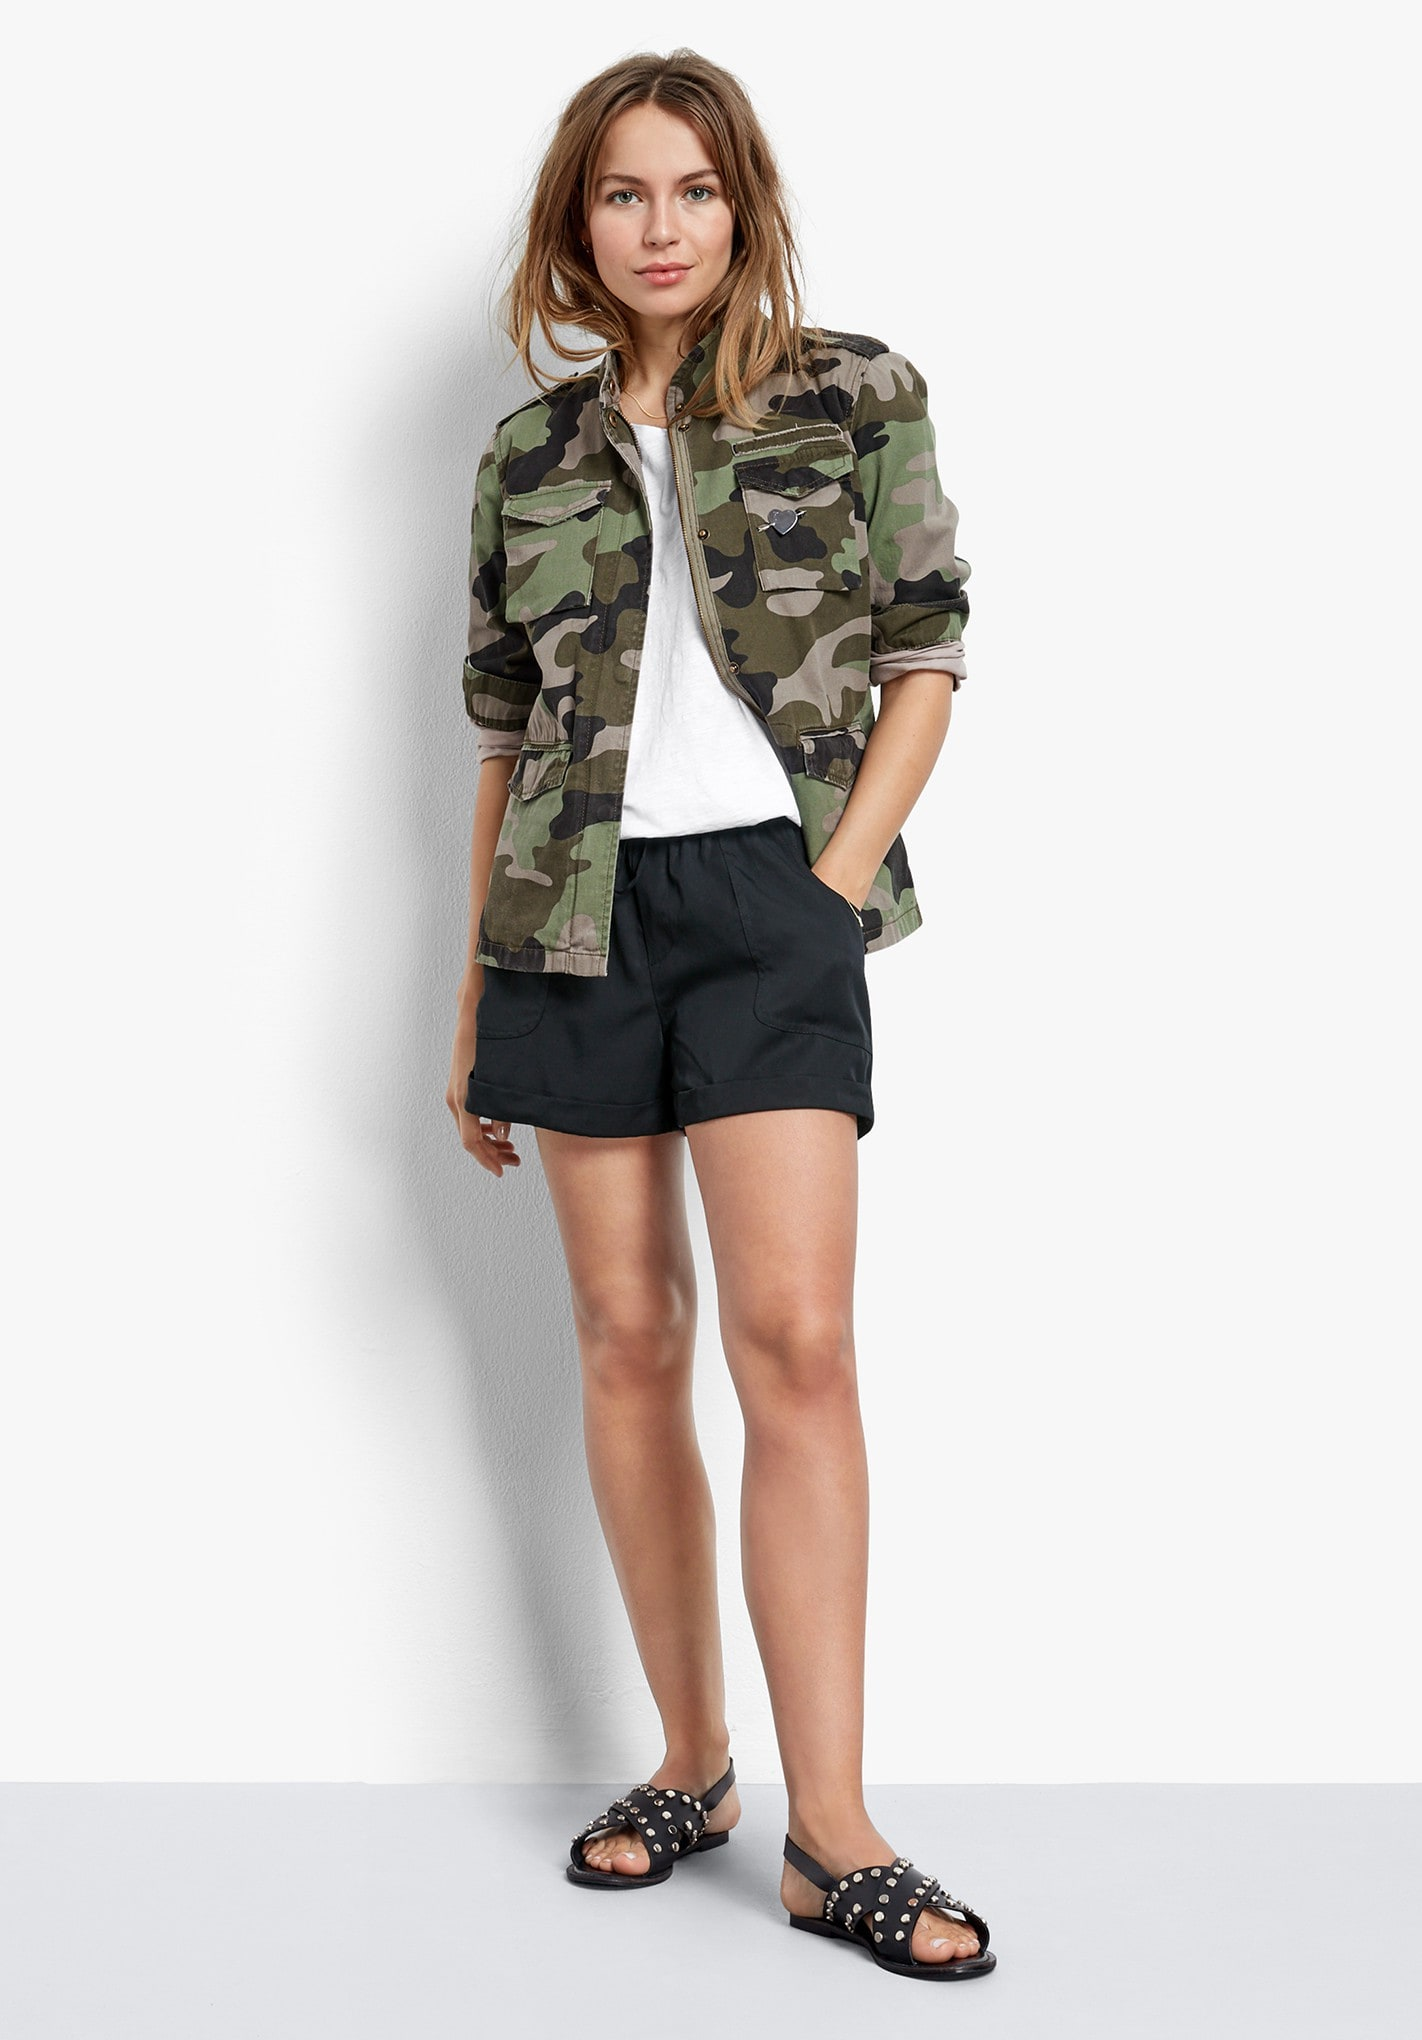 22f49f135d012 Hush's Camo Military Jacket £69 but I would advise you size down to get a slightly  less oversized look which will be more flattering.